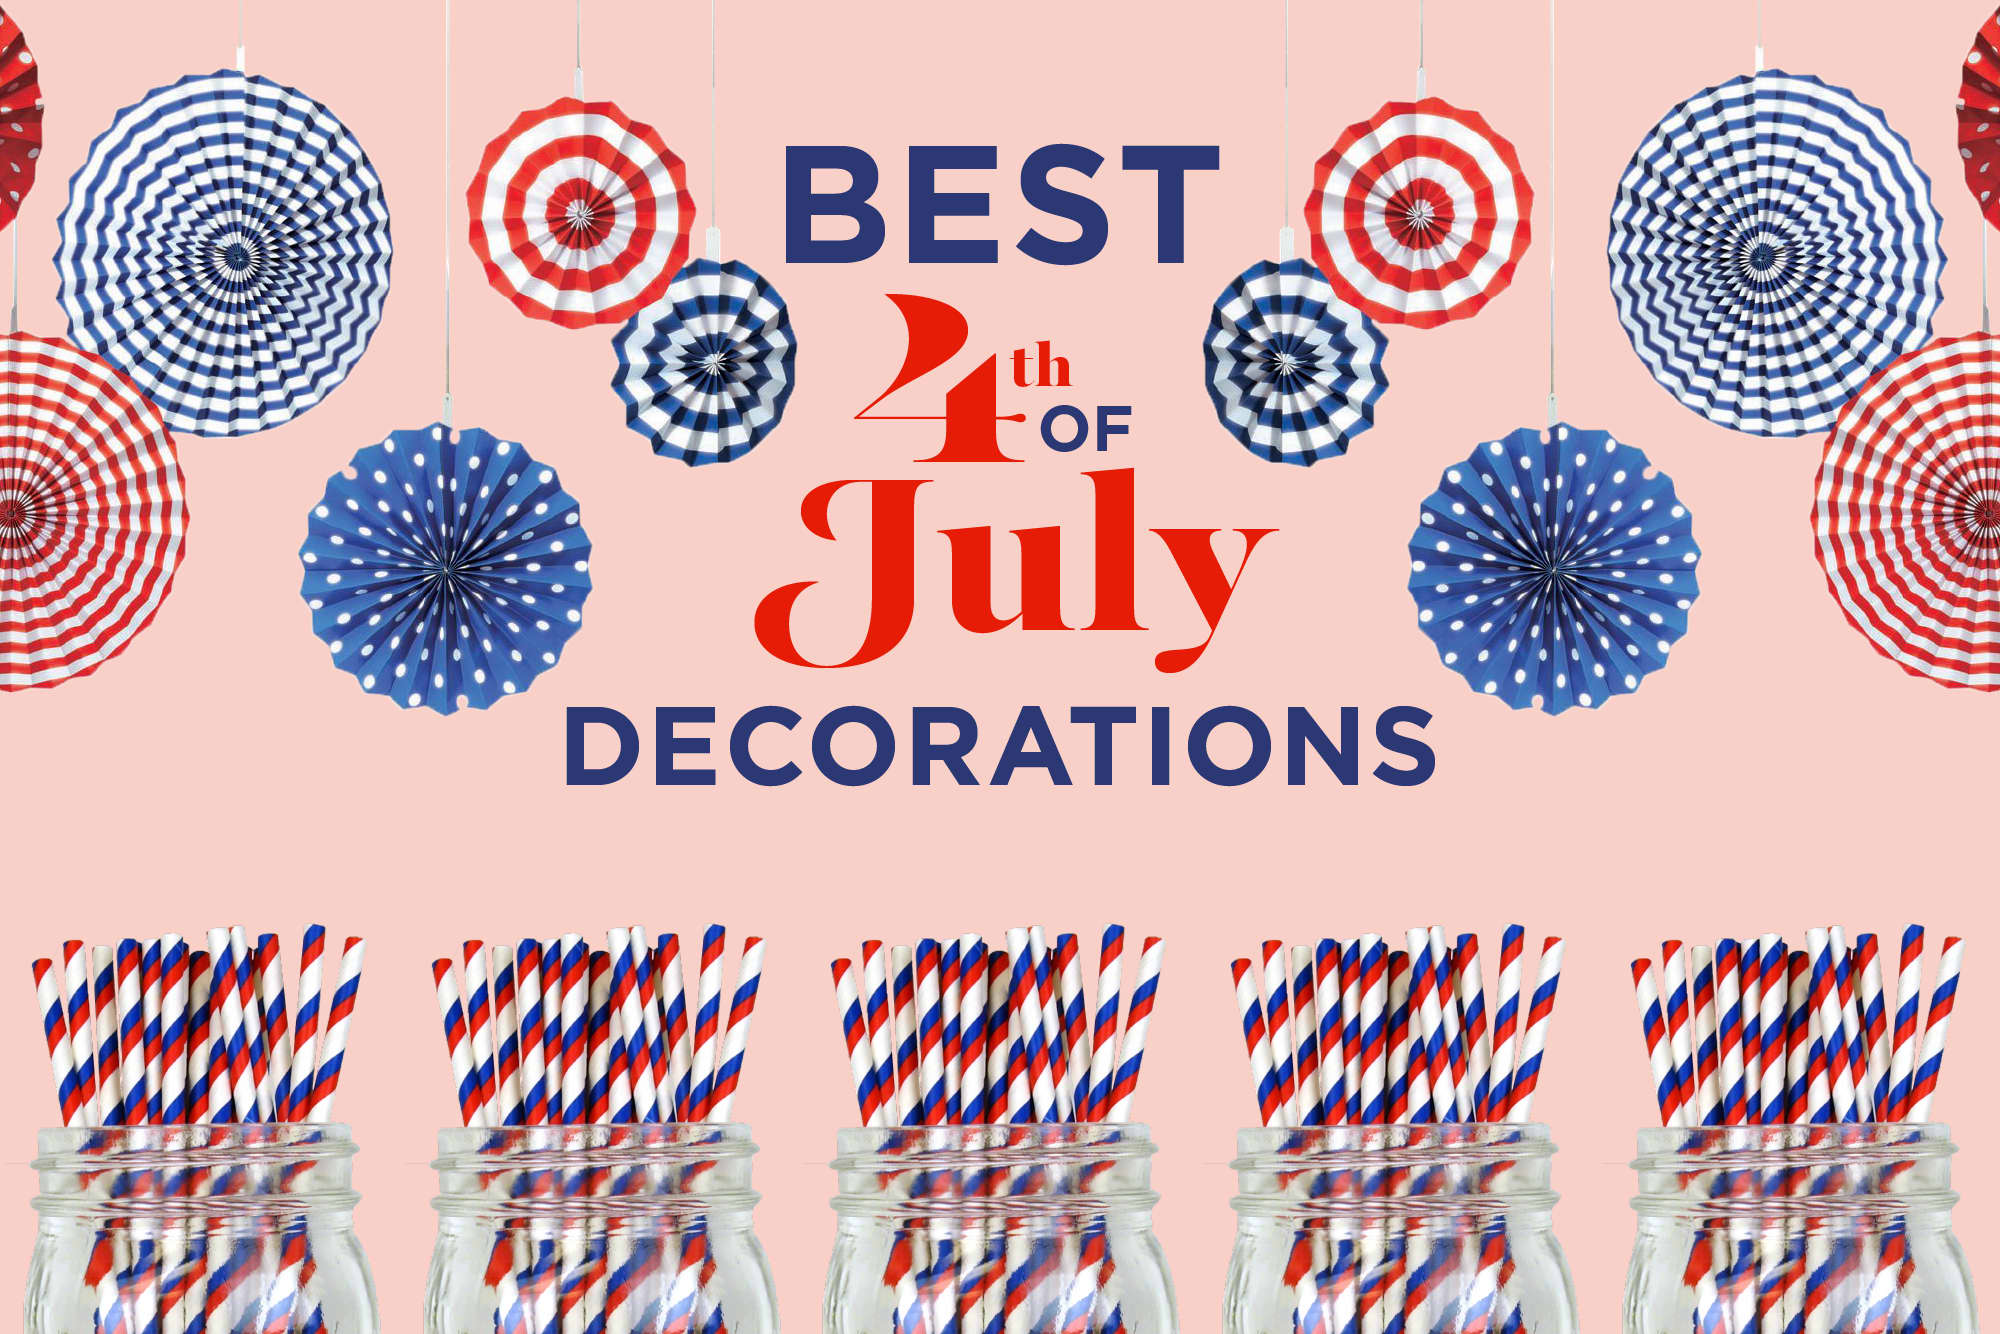 10 Festive 4th of July Decorations for $10 or Less: gallery image 1